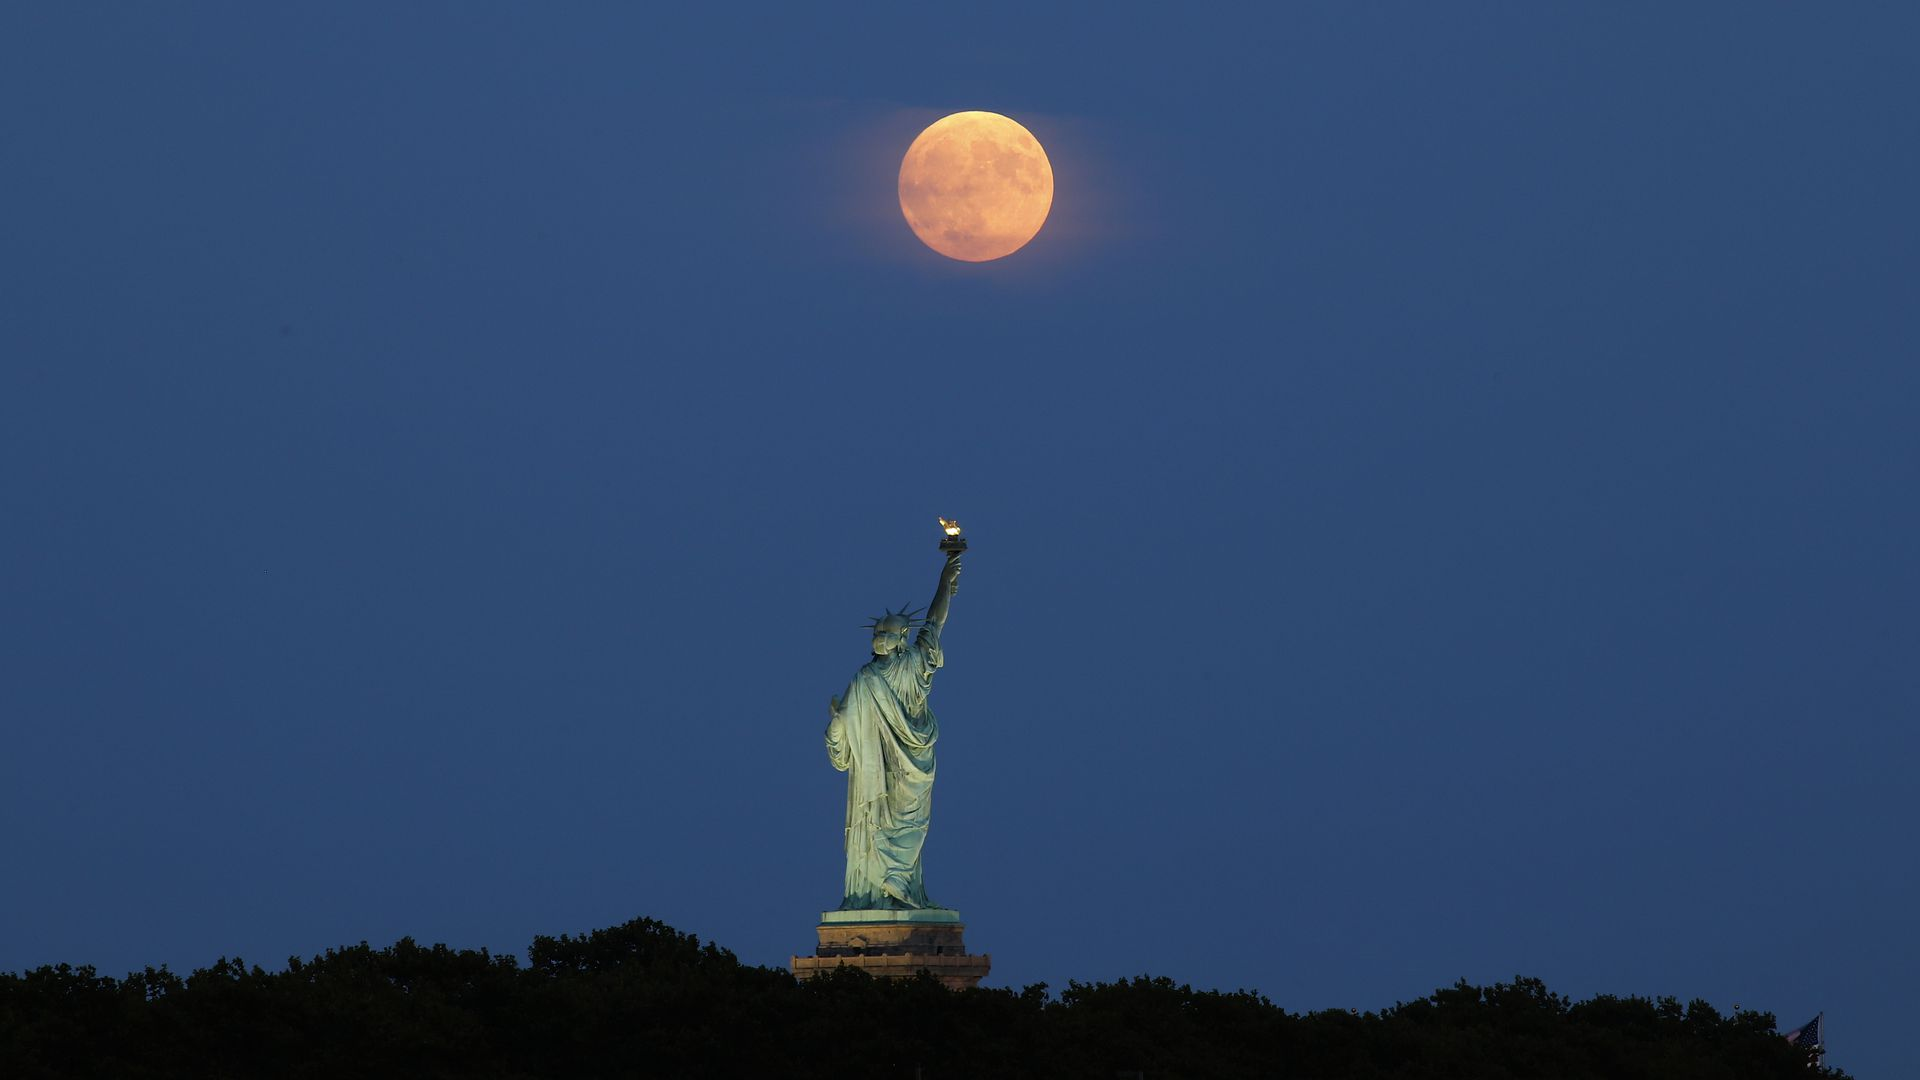 Statue of Liberty on dark background with orange moon